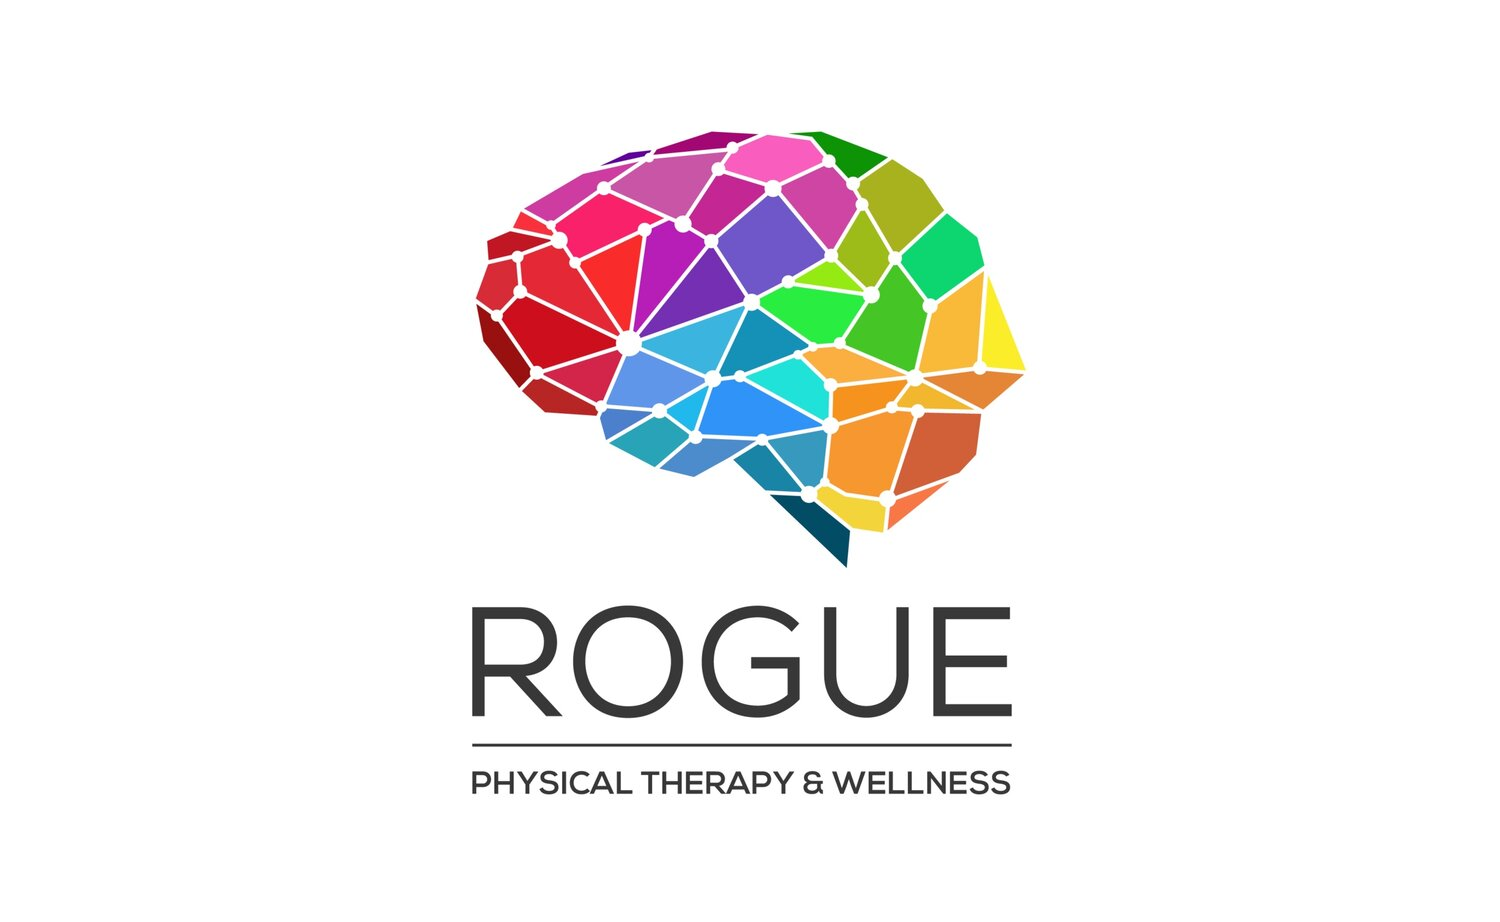 Rogue Physical Therapy & Wellness